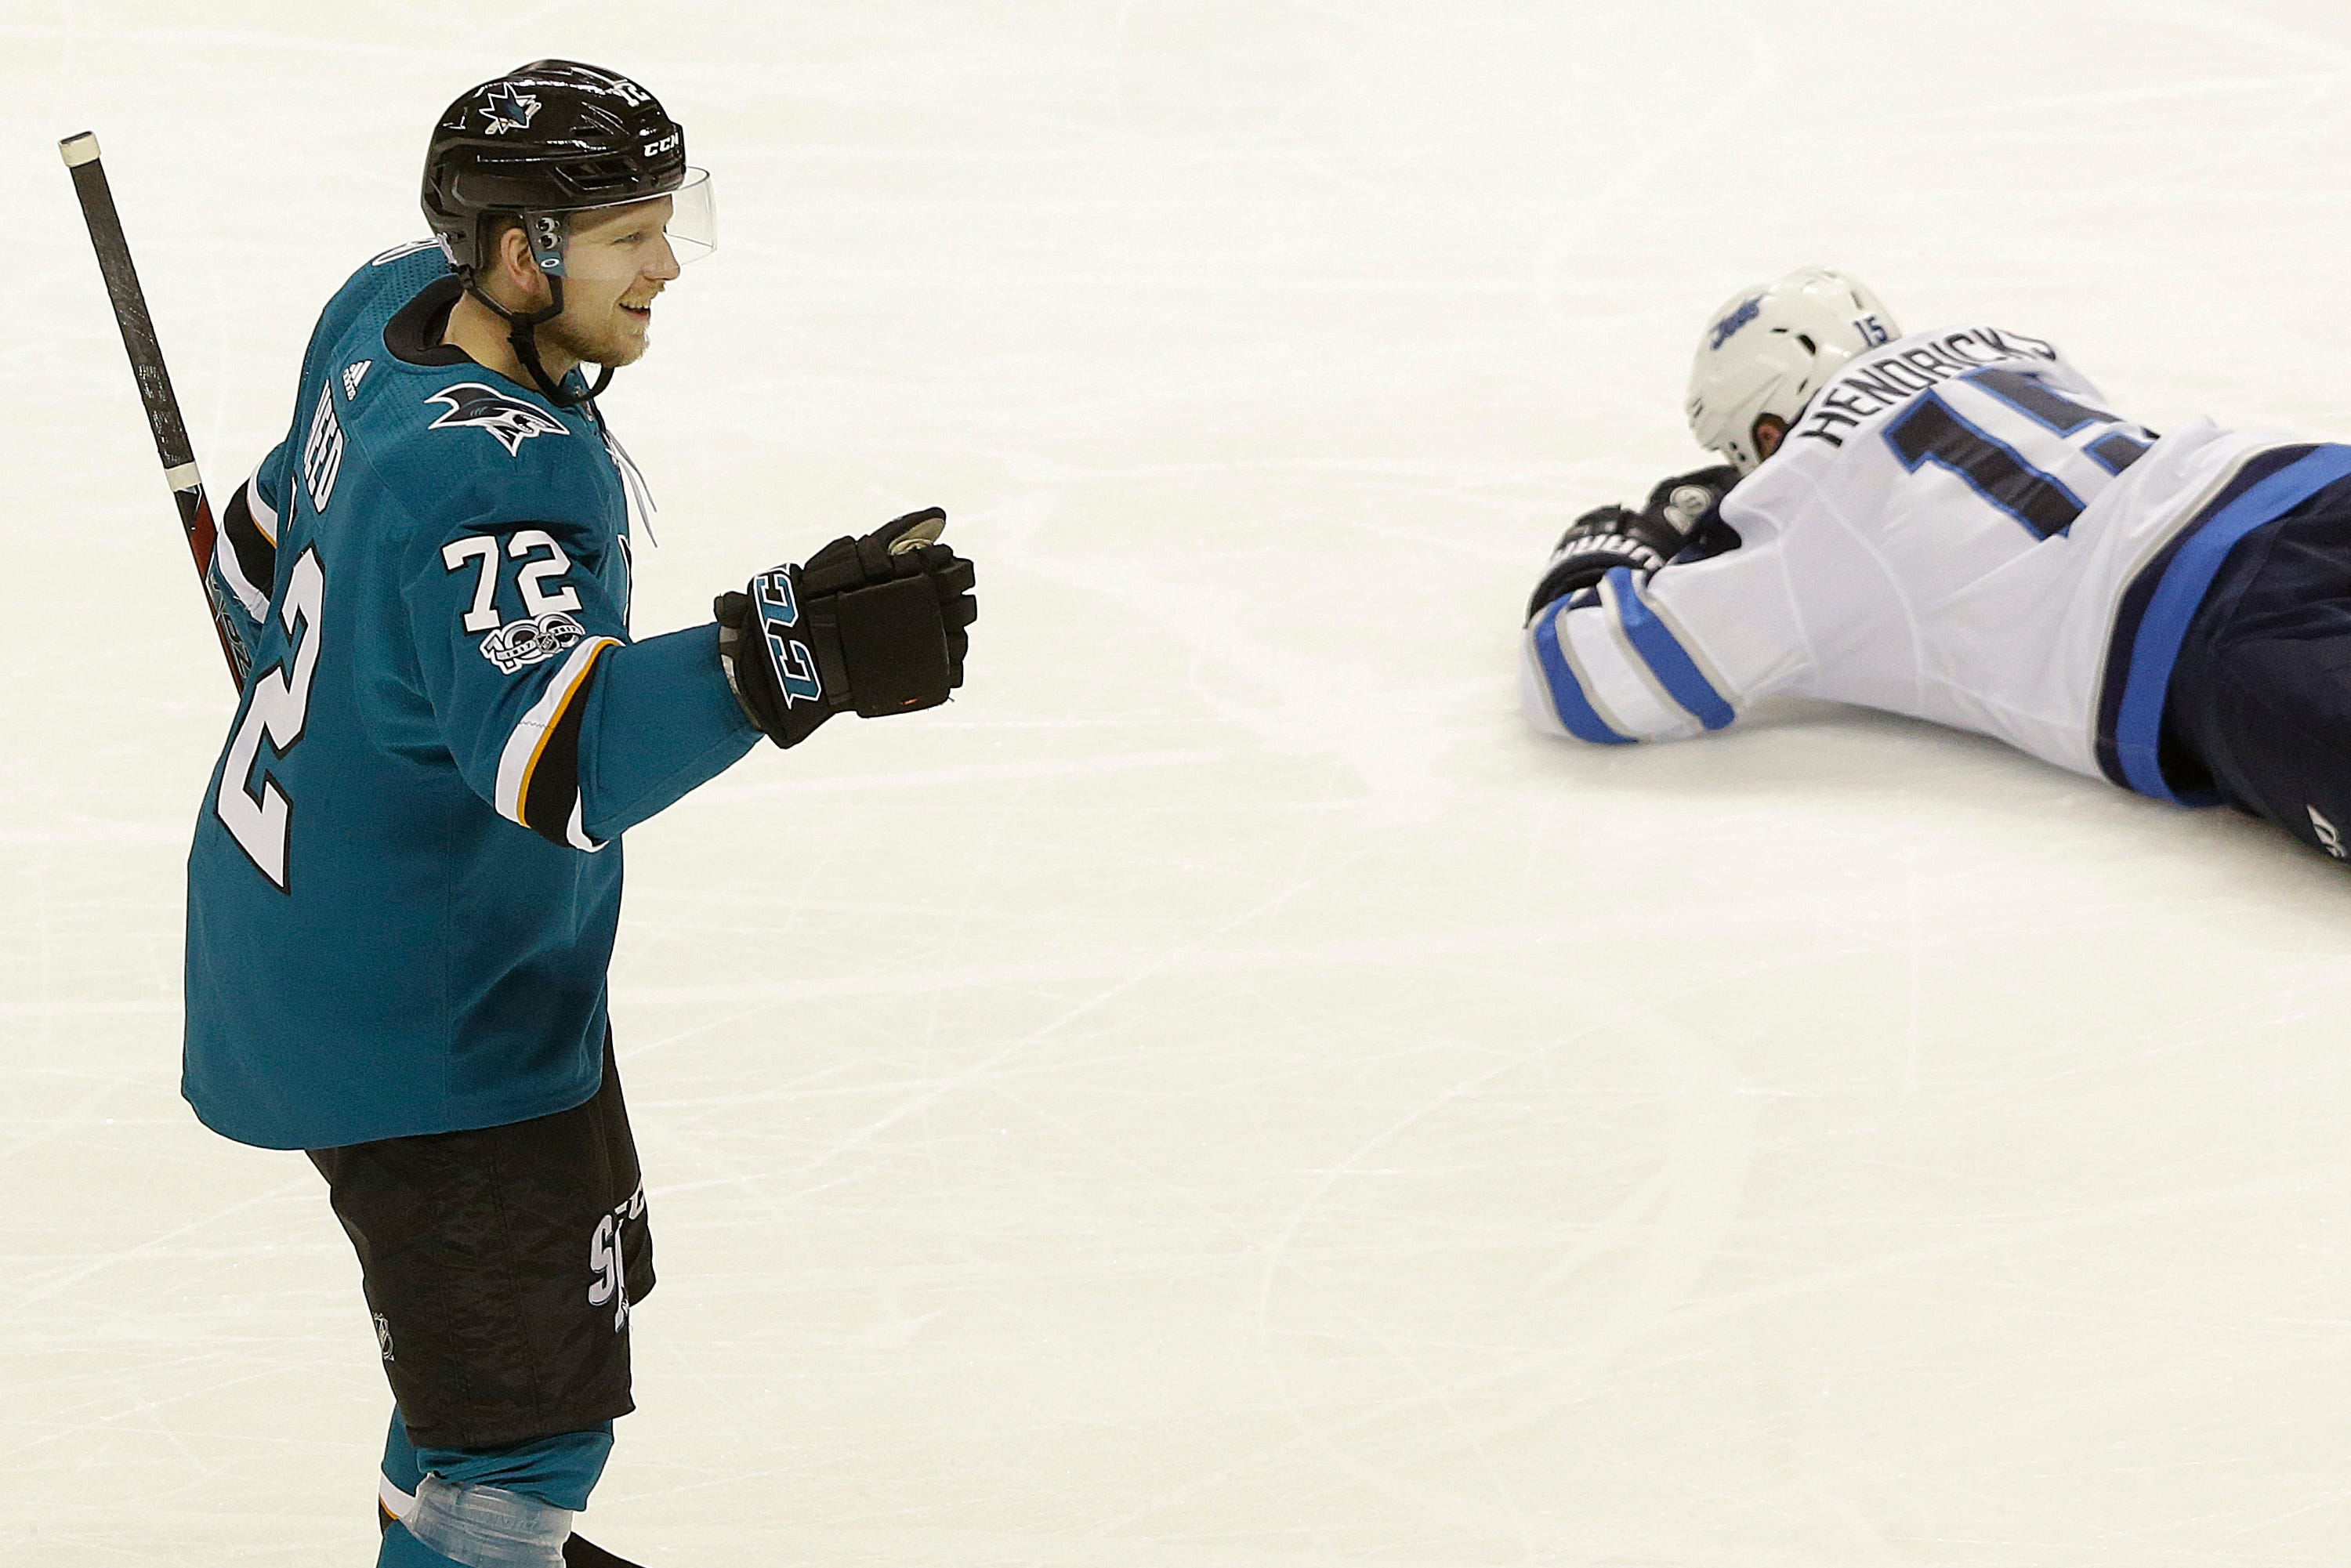 Couture scores twice as Sharks top Jets 4-0